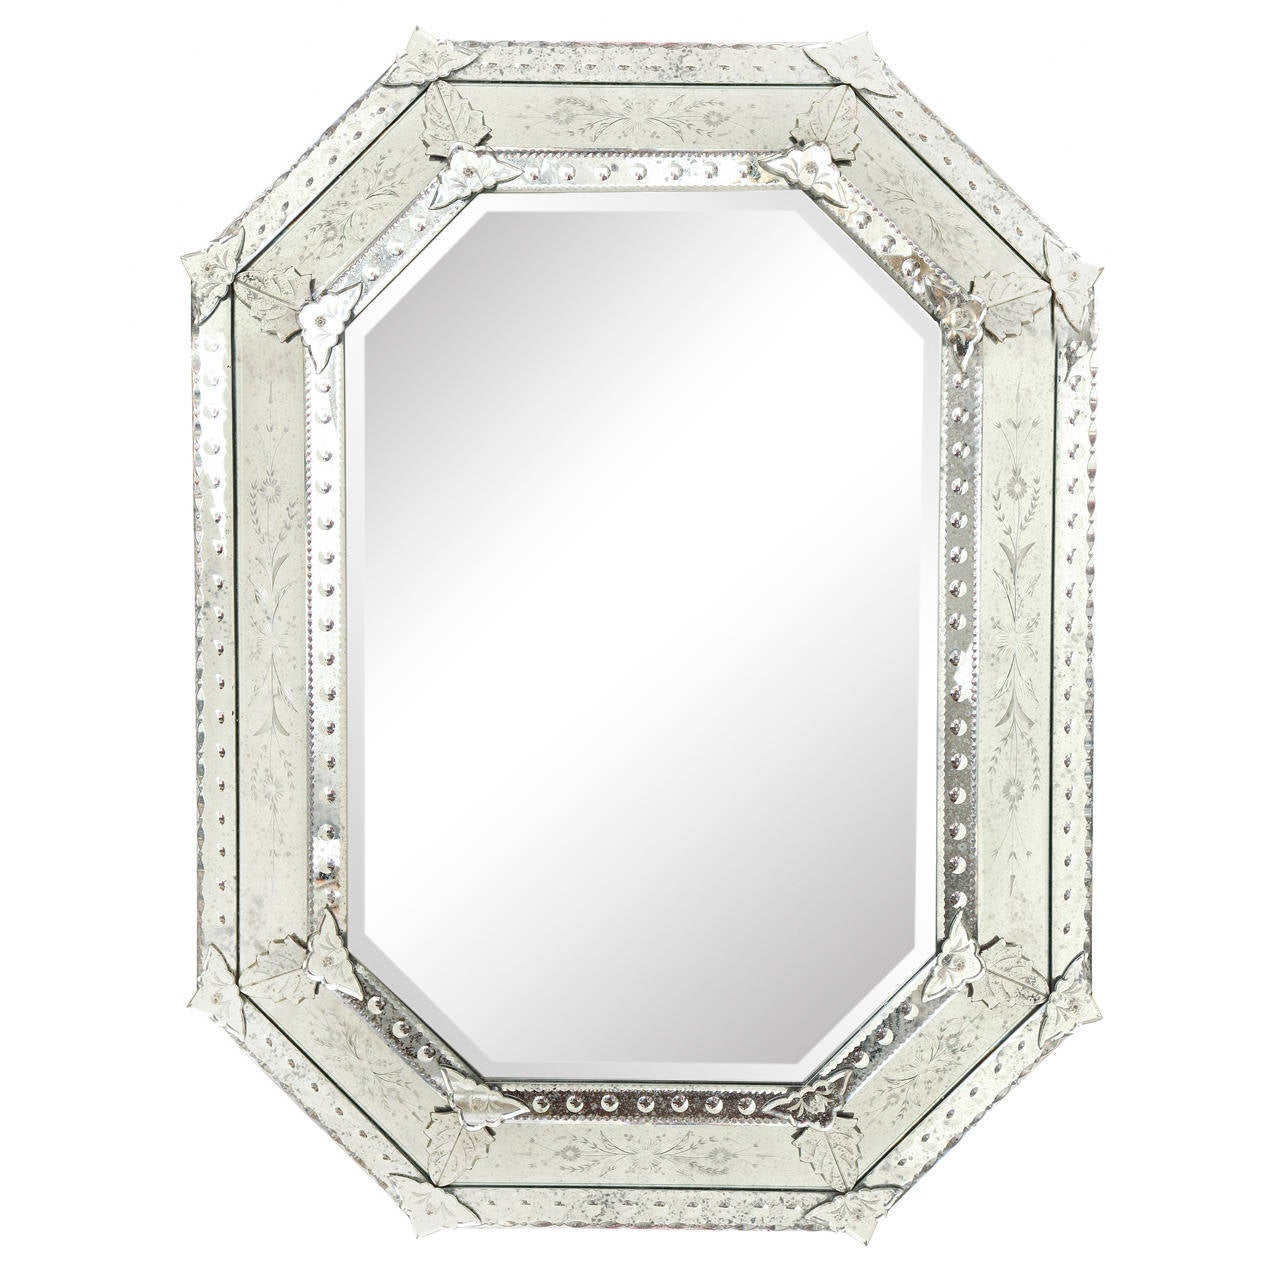 Oversized octagonal venetian mirror at 1stdibs for Oversized mirror